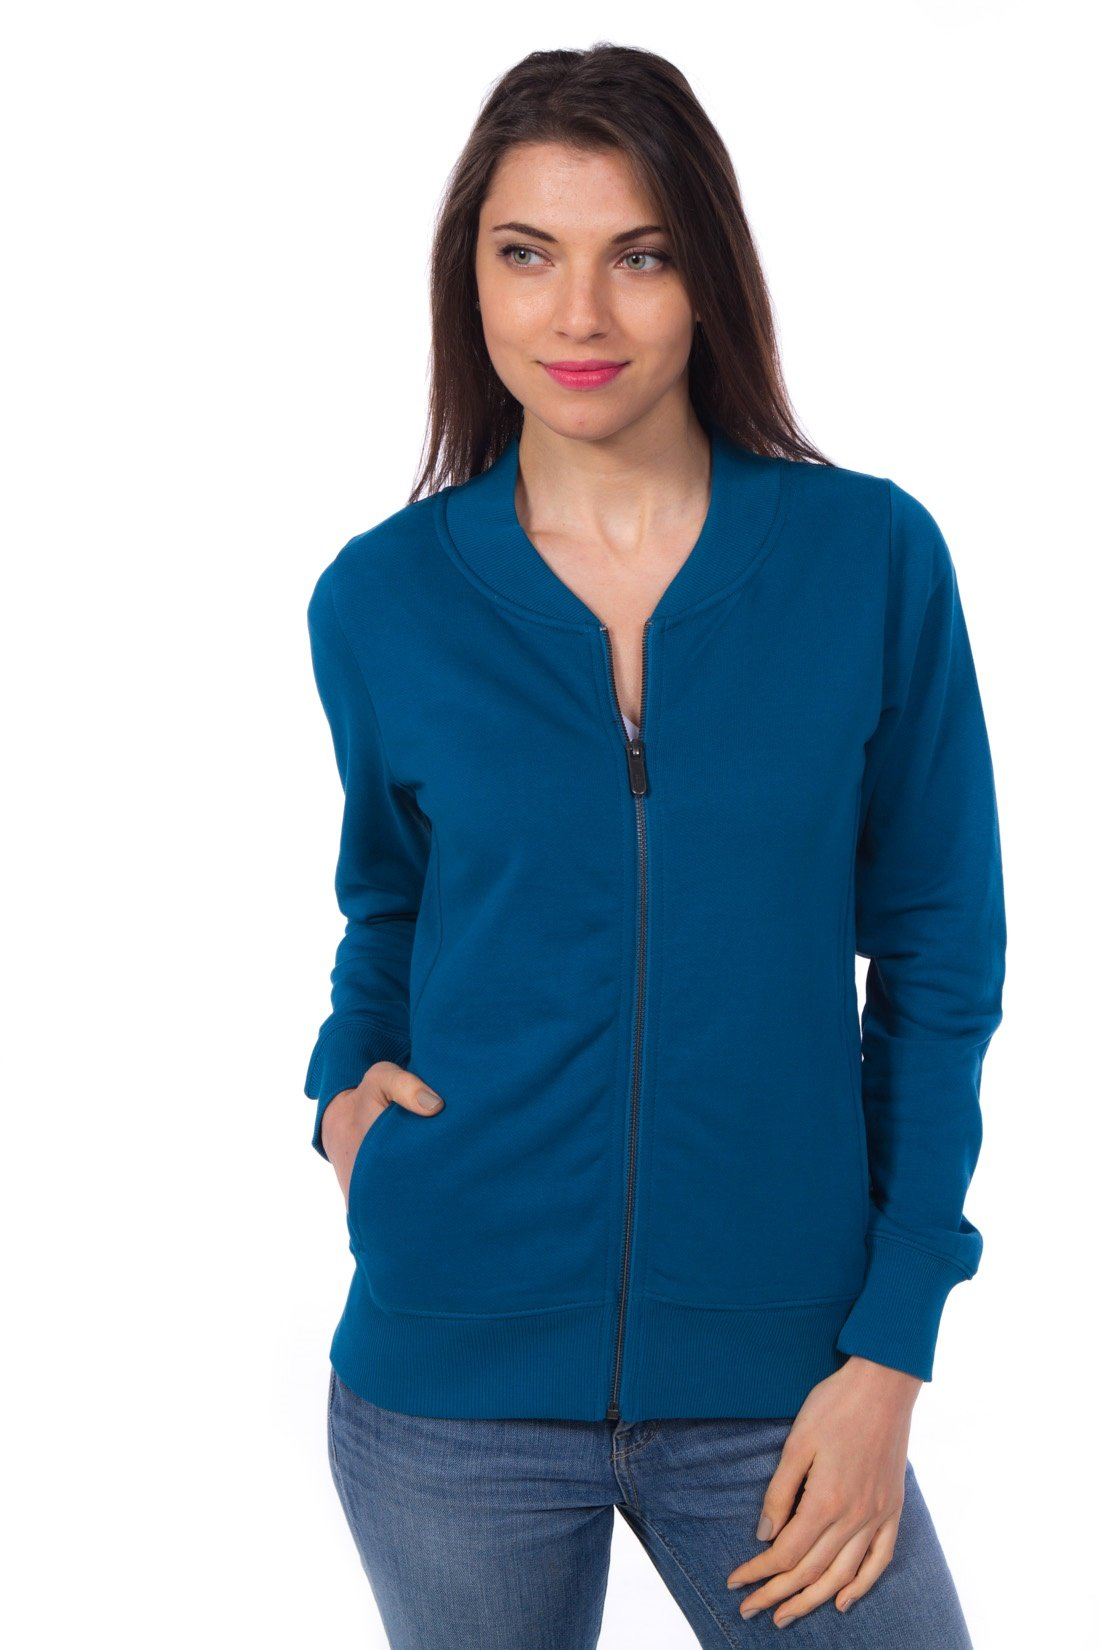 Ably Apparel Cindy (2X Large, Moroccan Blue)